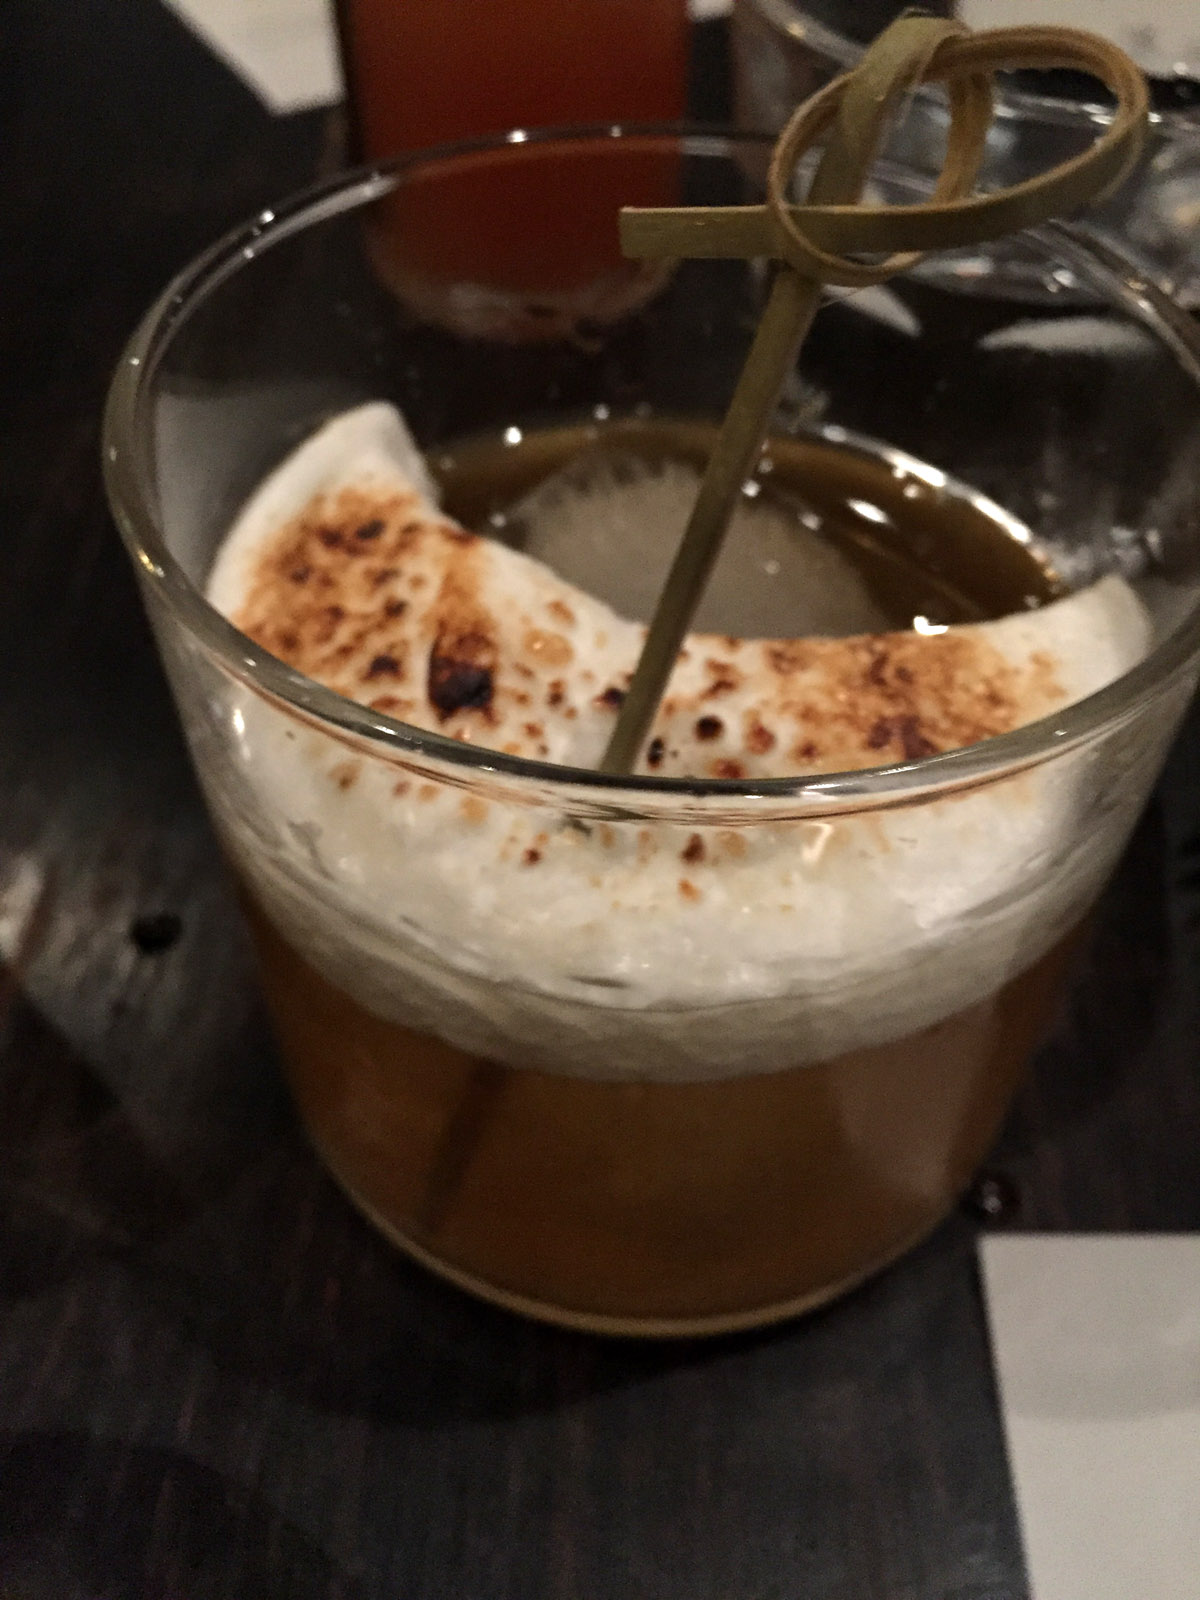 Bettencourt. McKenna Bonded Bourbon, Corbin Cash Sweet Potato Liqueur, Jameson Caskmates Stout, toasted marshmallow.